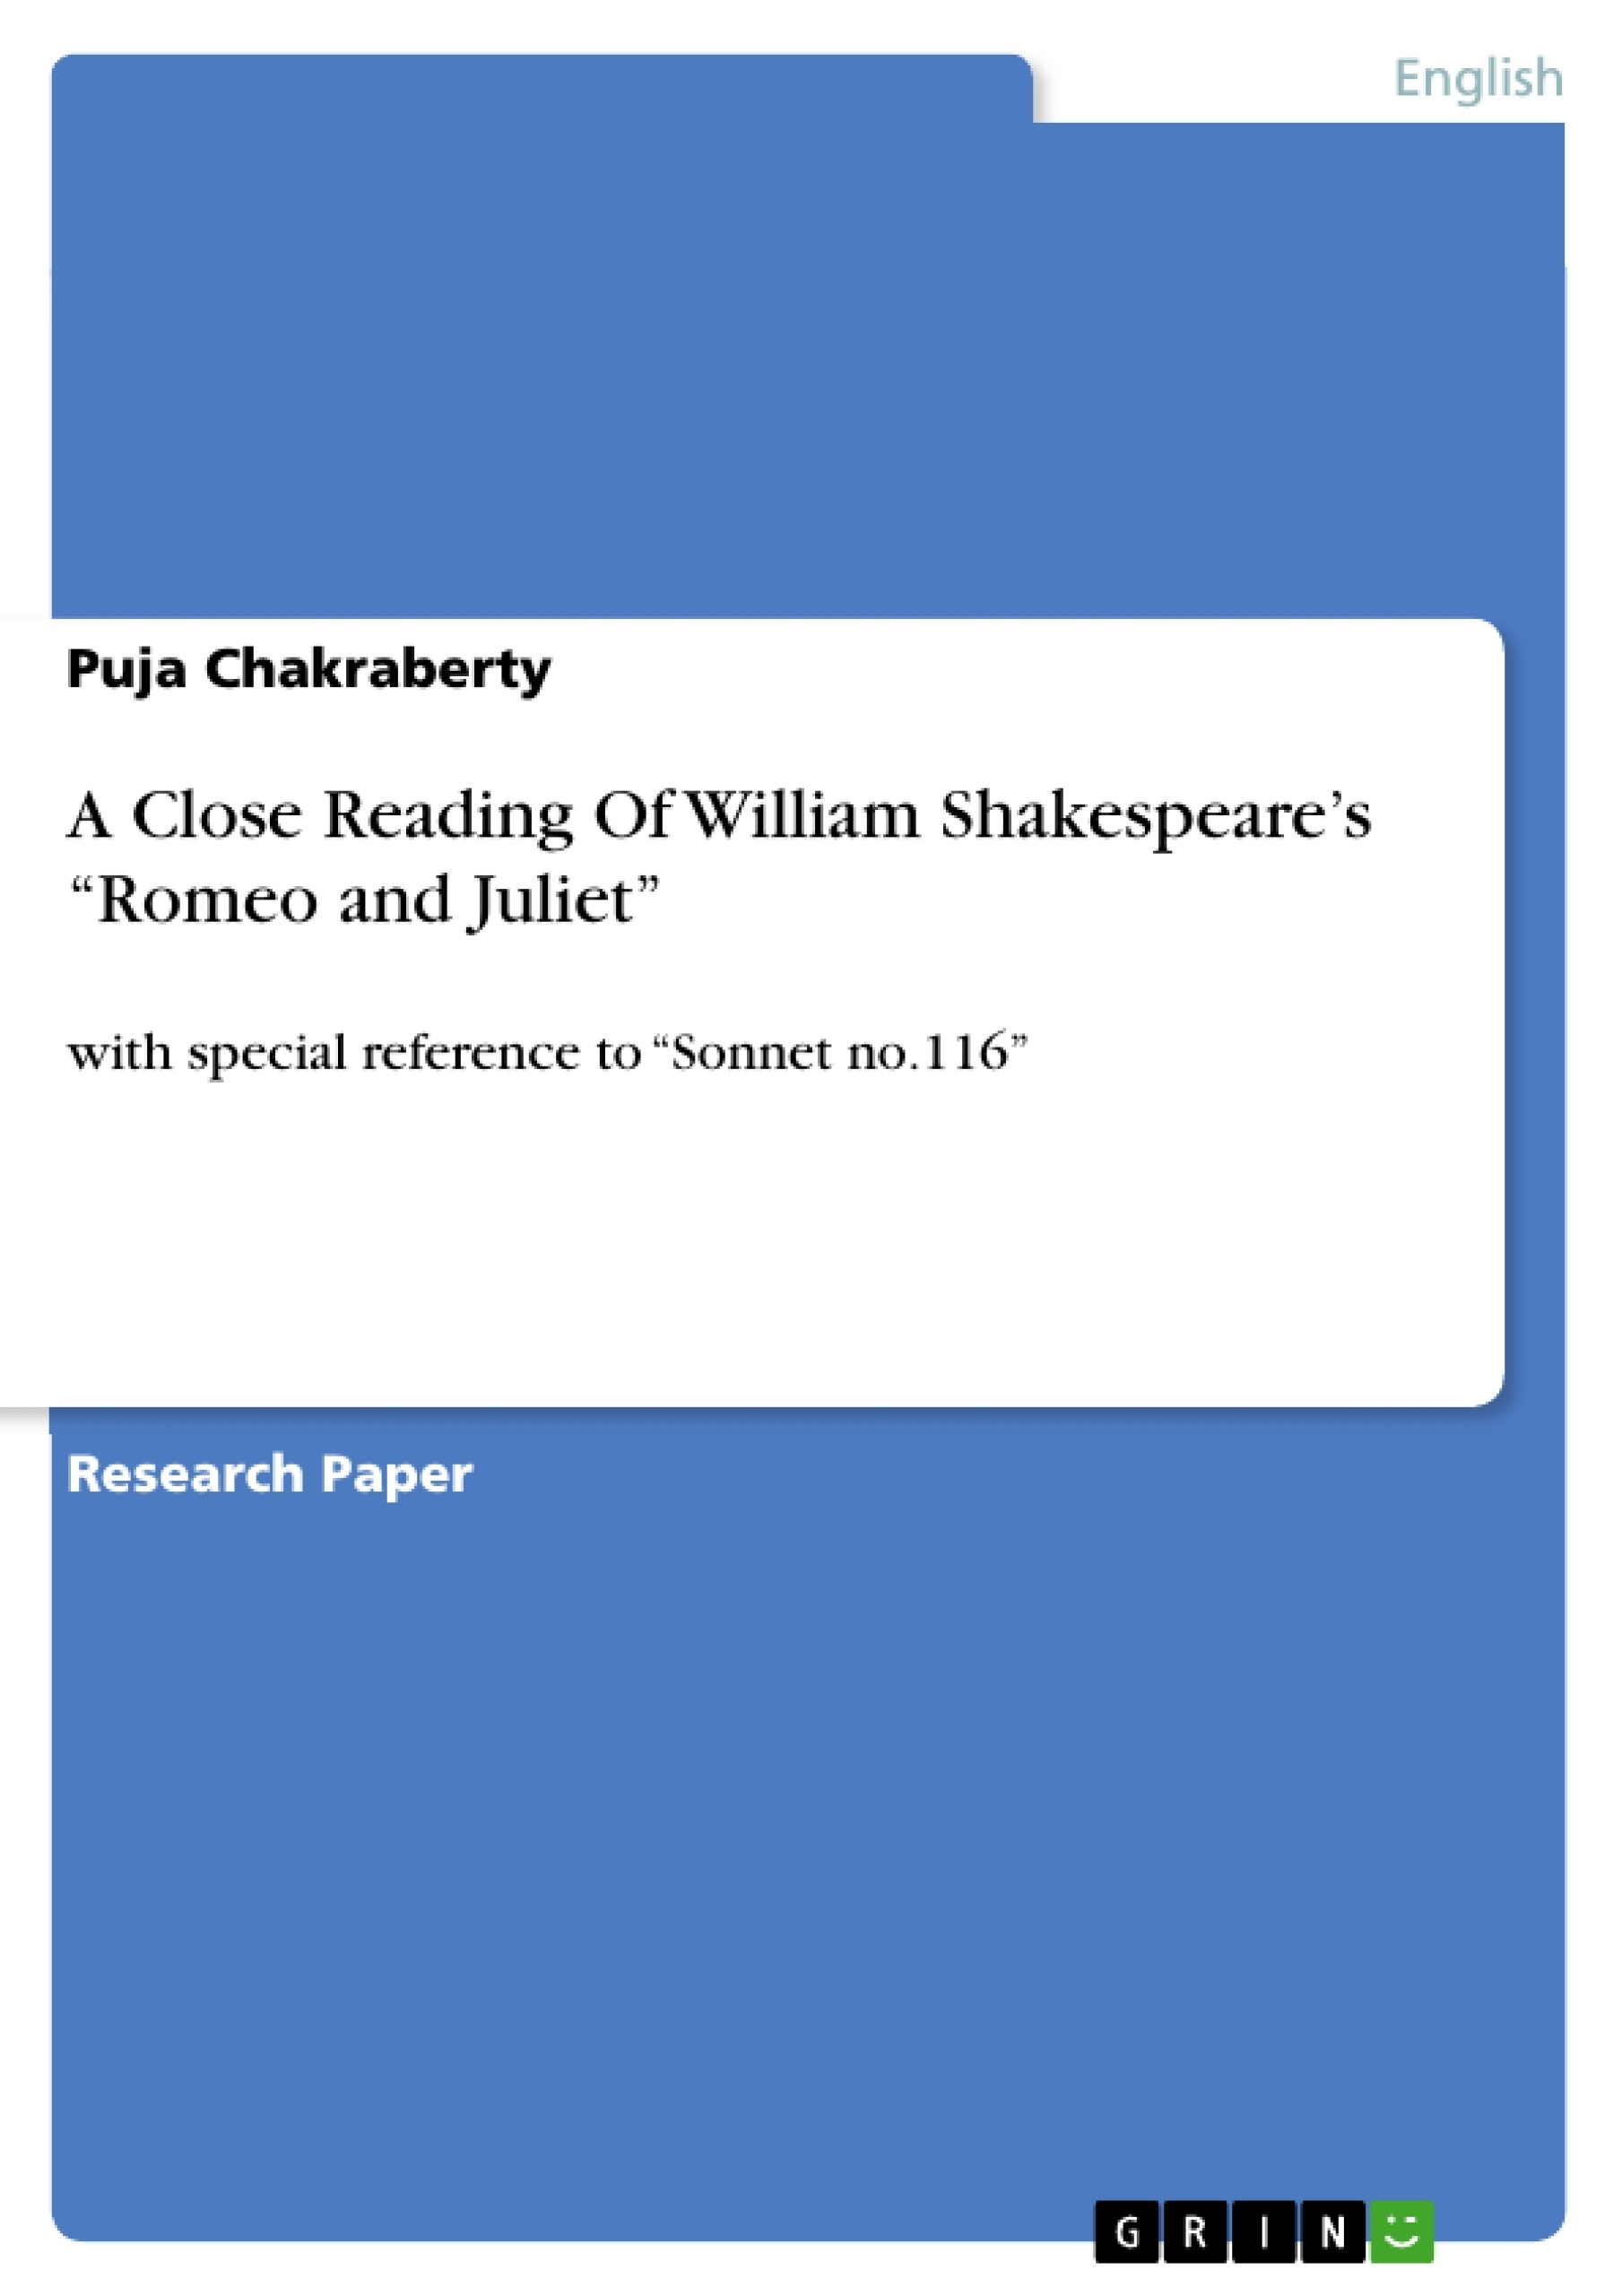 a close reading of william shakespeare s romeo and juliet a close reading of william shakespeare s romeo and juliet publish your master s thesis bachelor s thesis essay or term paper